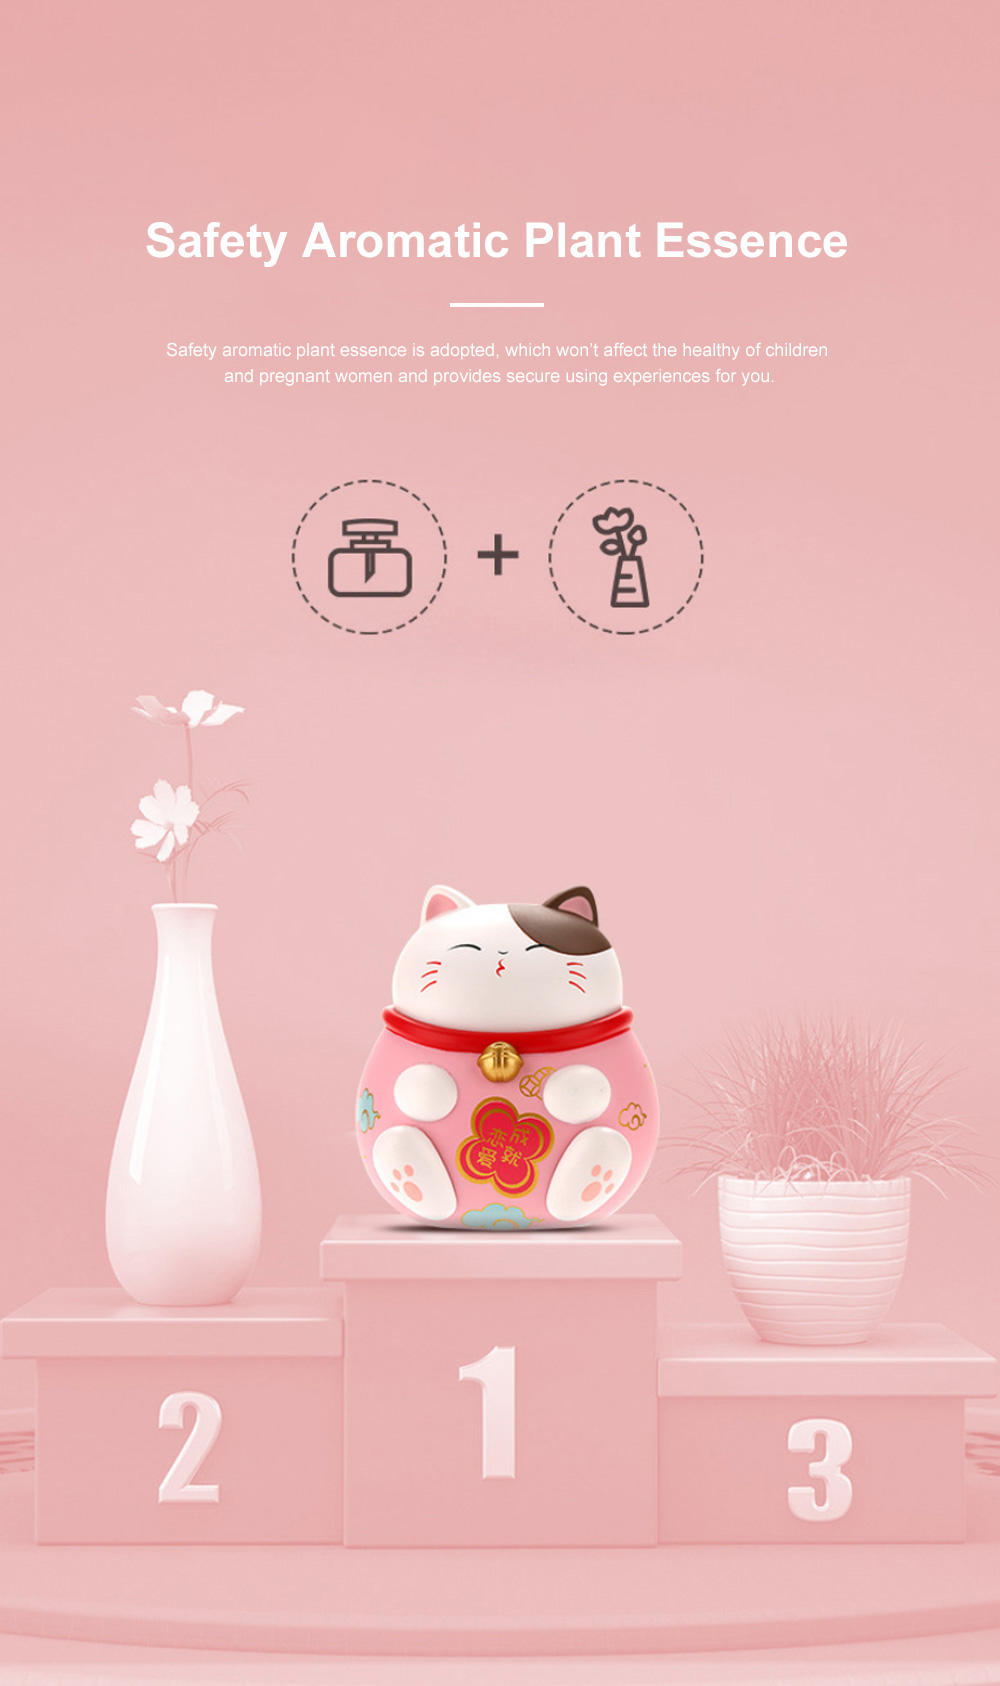 Cute Caron Fortune Cat Model Enduring Light Fragrance Car Perfume Aromatherapy Solid Perfume Ornament 3